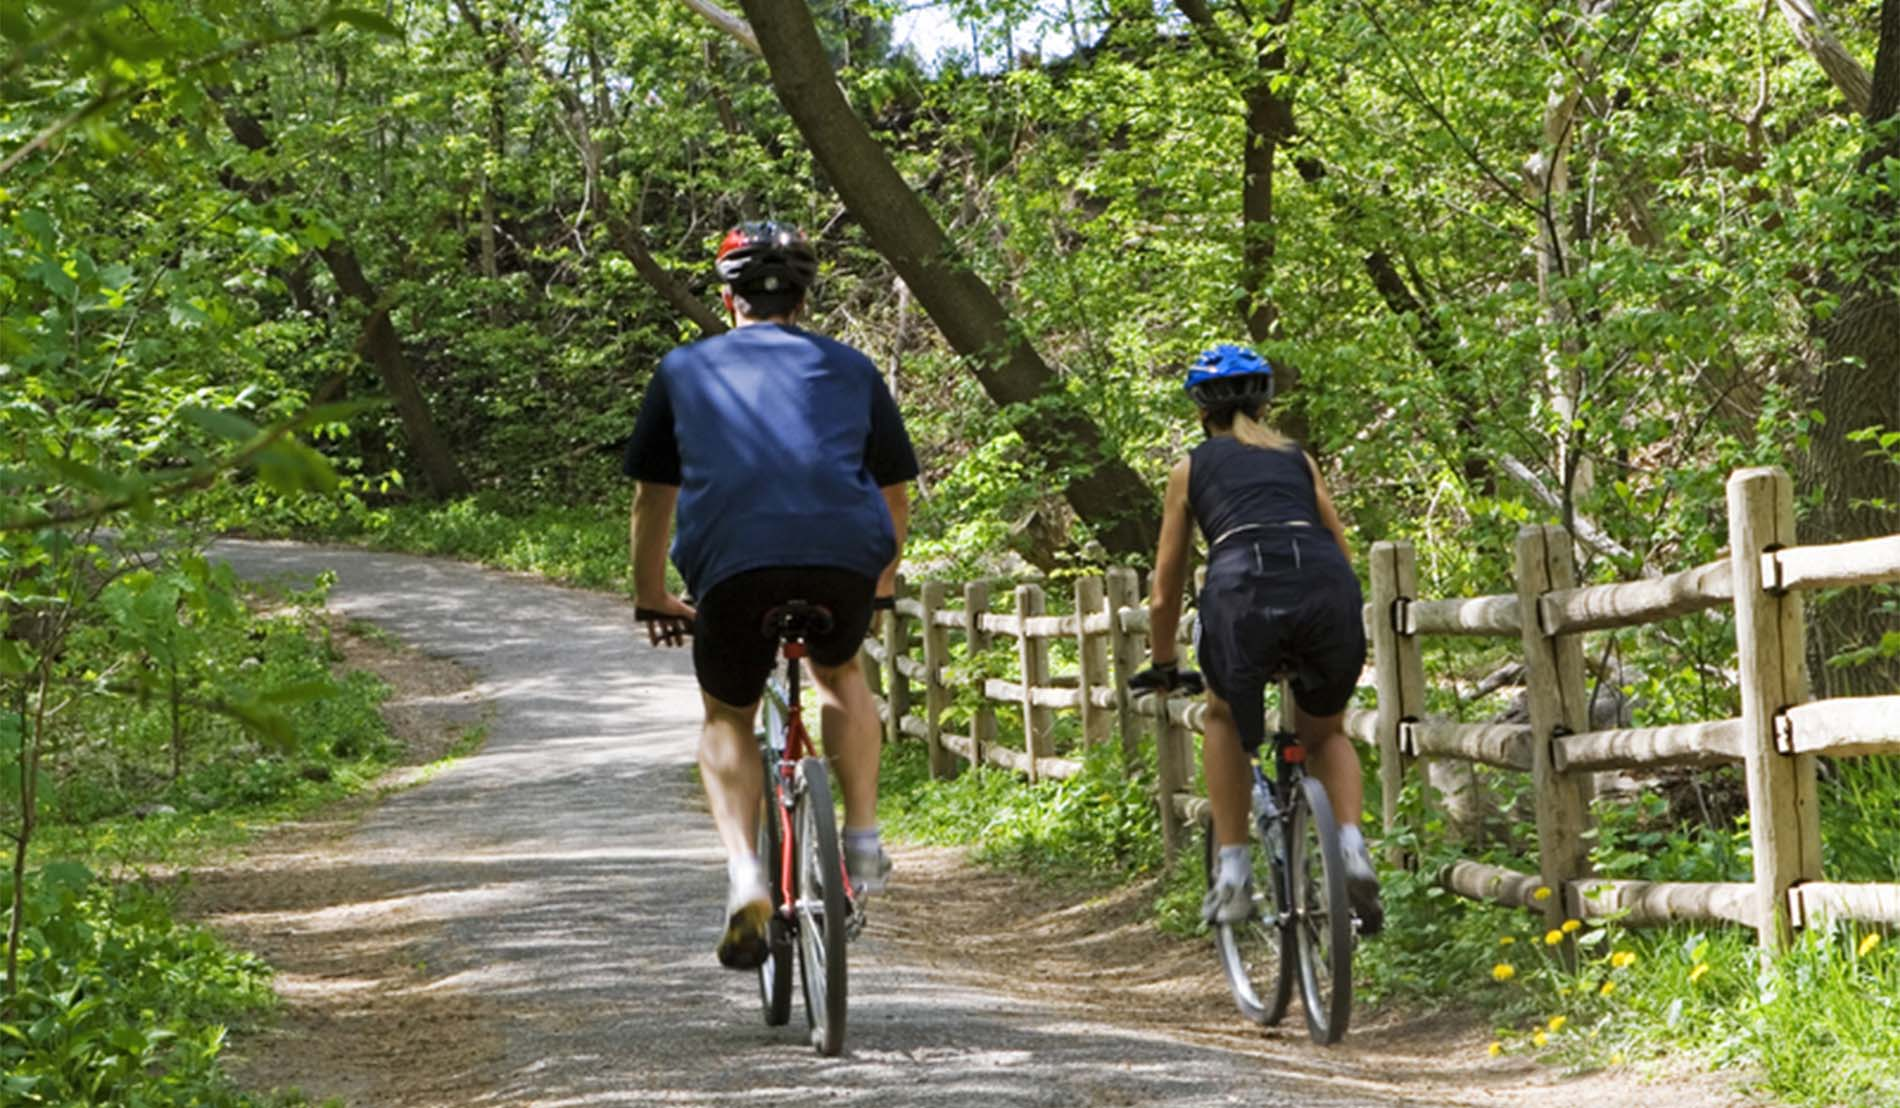 Man and woman wearing helmets on bicycles riding down a tree lined path